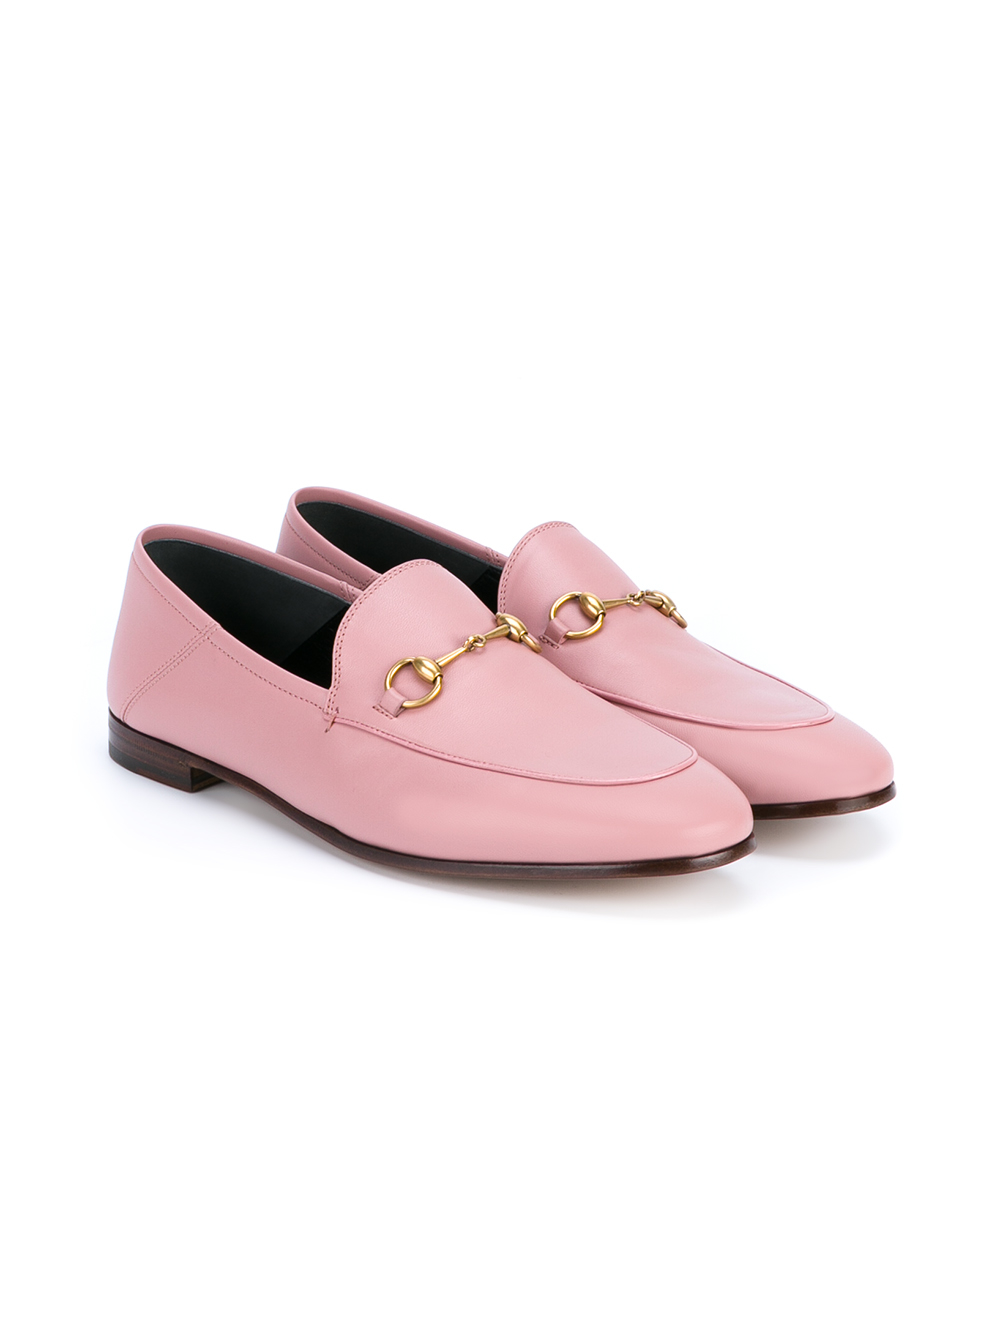 Lyst - Gucci Jordaan Horsebit Loafers in Pink